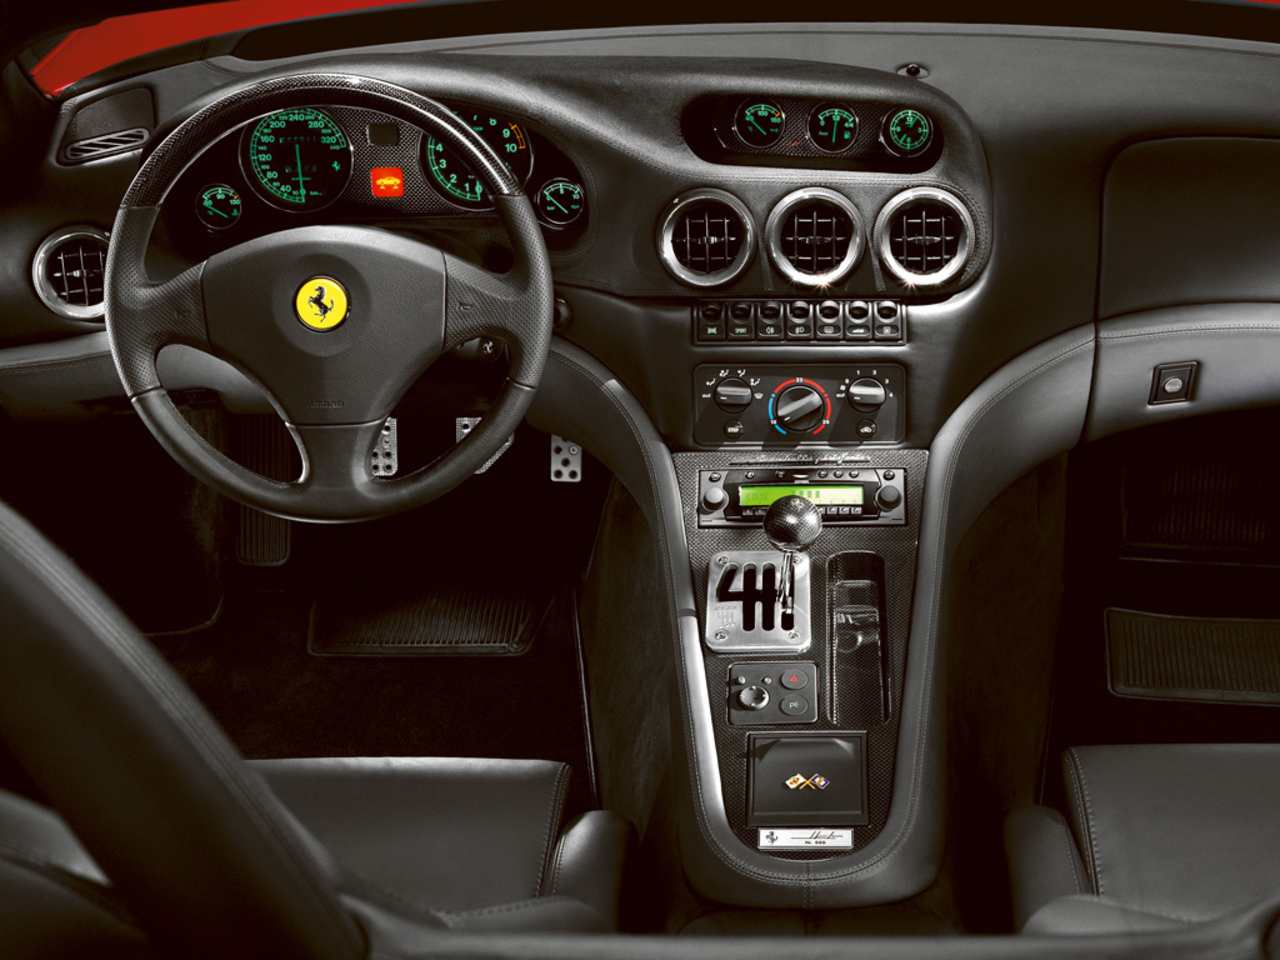 550 Barchetta Pininfarina: Steering wheel and dashboard detail